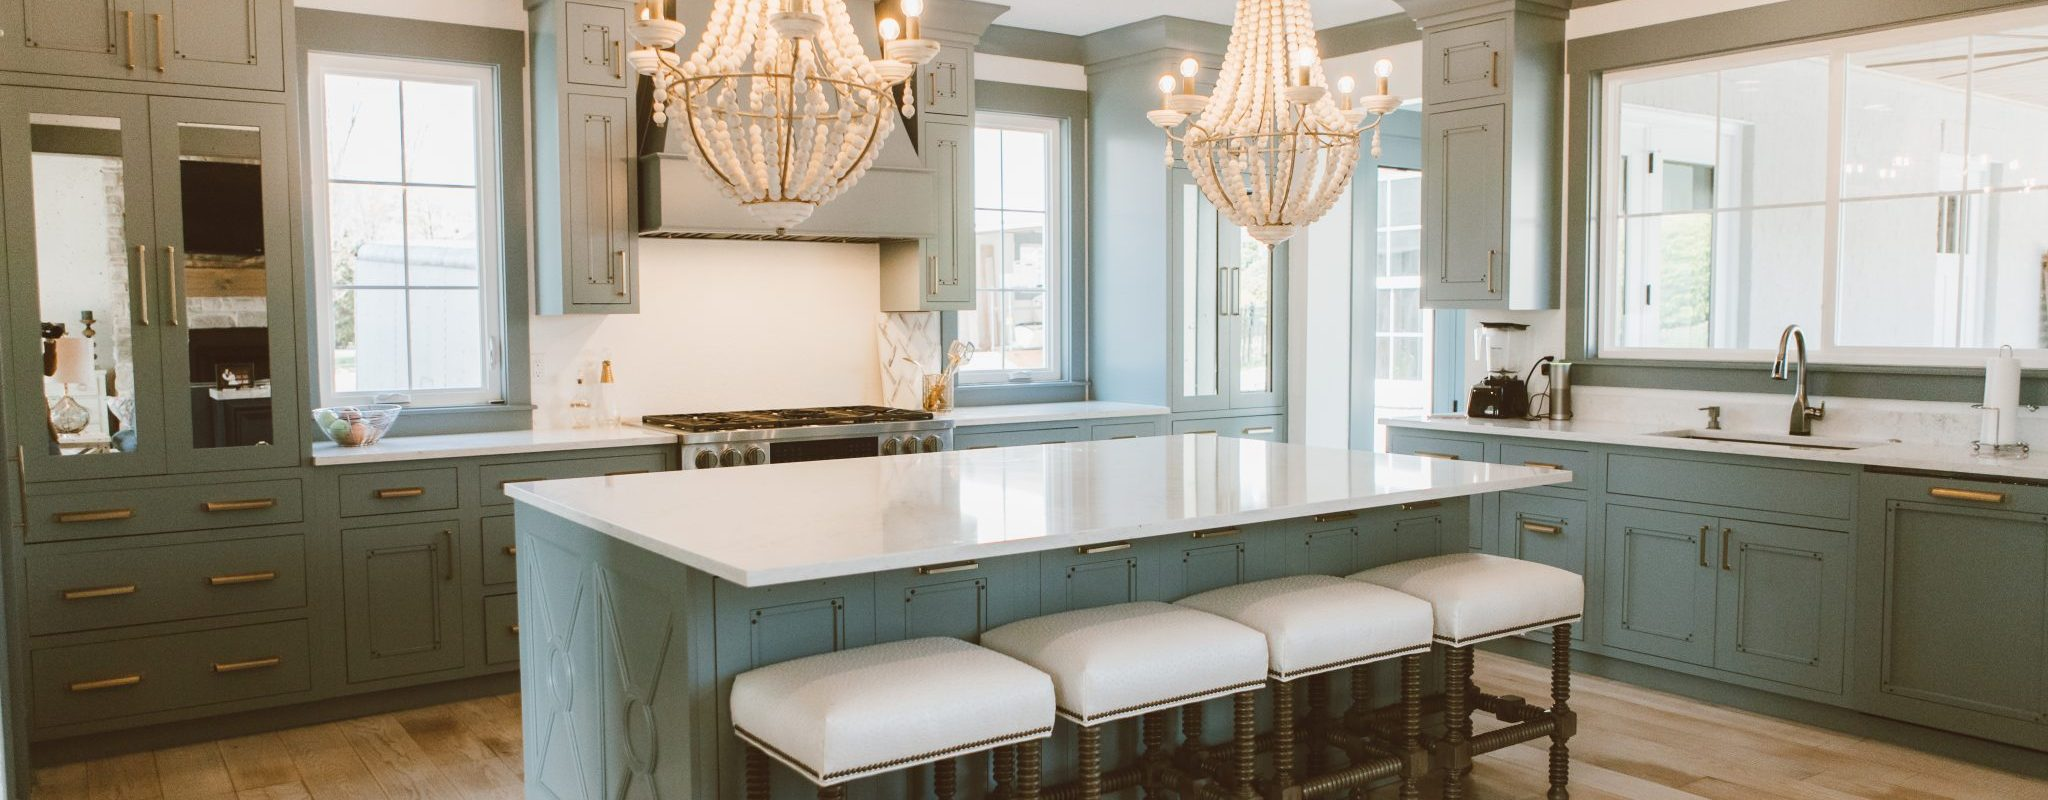 shae design studio kitchen